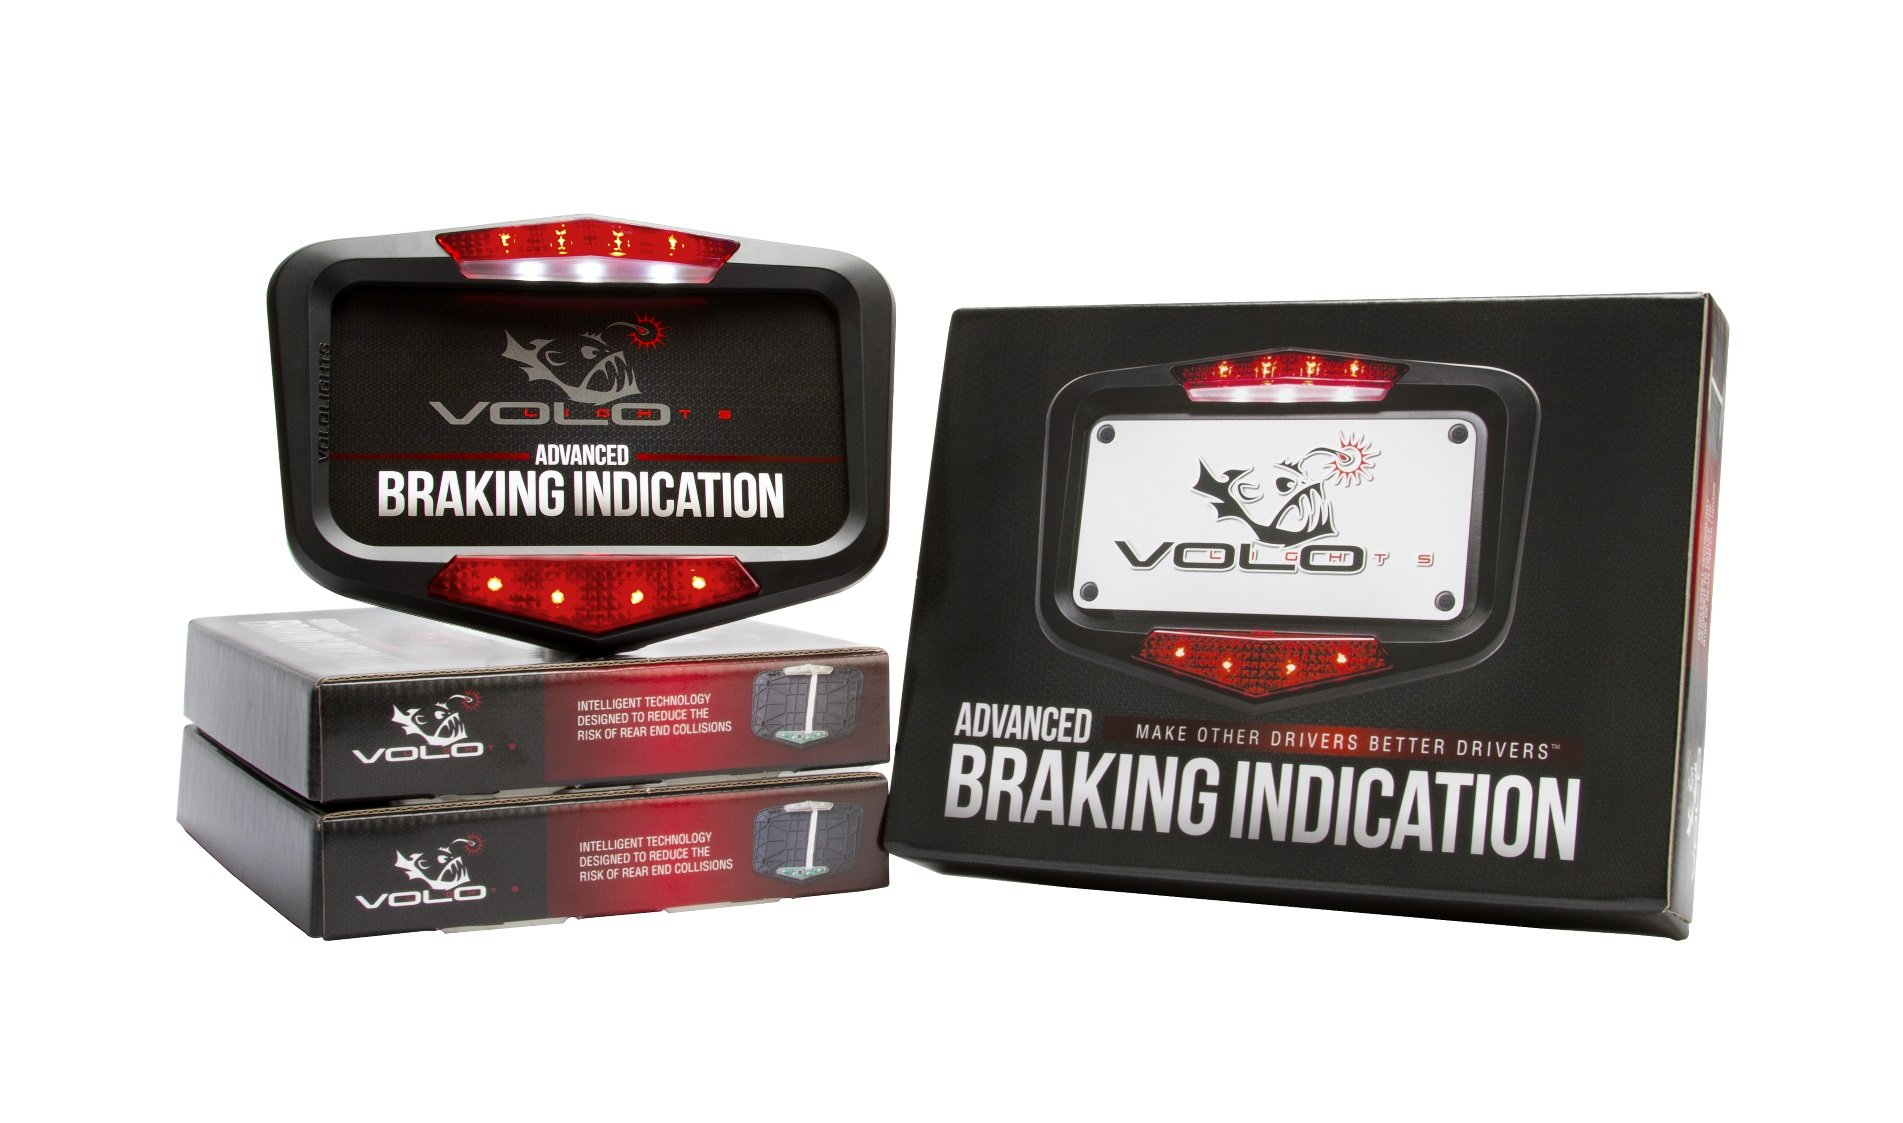 Vololights Motorcycle Brake Lights Indicates Braking From Engine Braking and Downshifting, Easy 5 Minute Installation, Waterproof and Rugged Design, Matte Black Finish